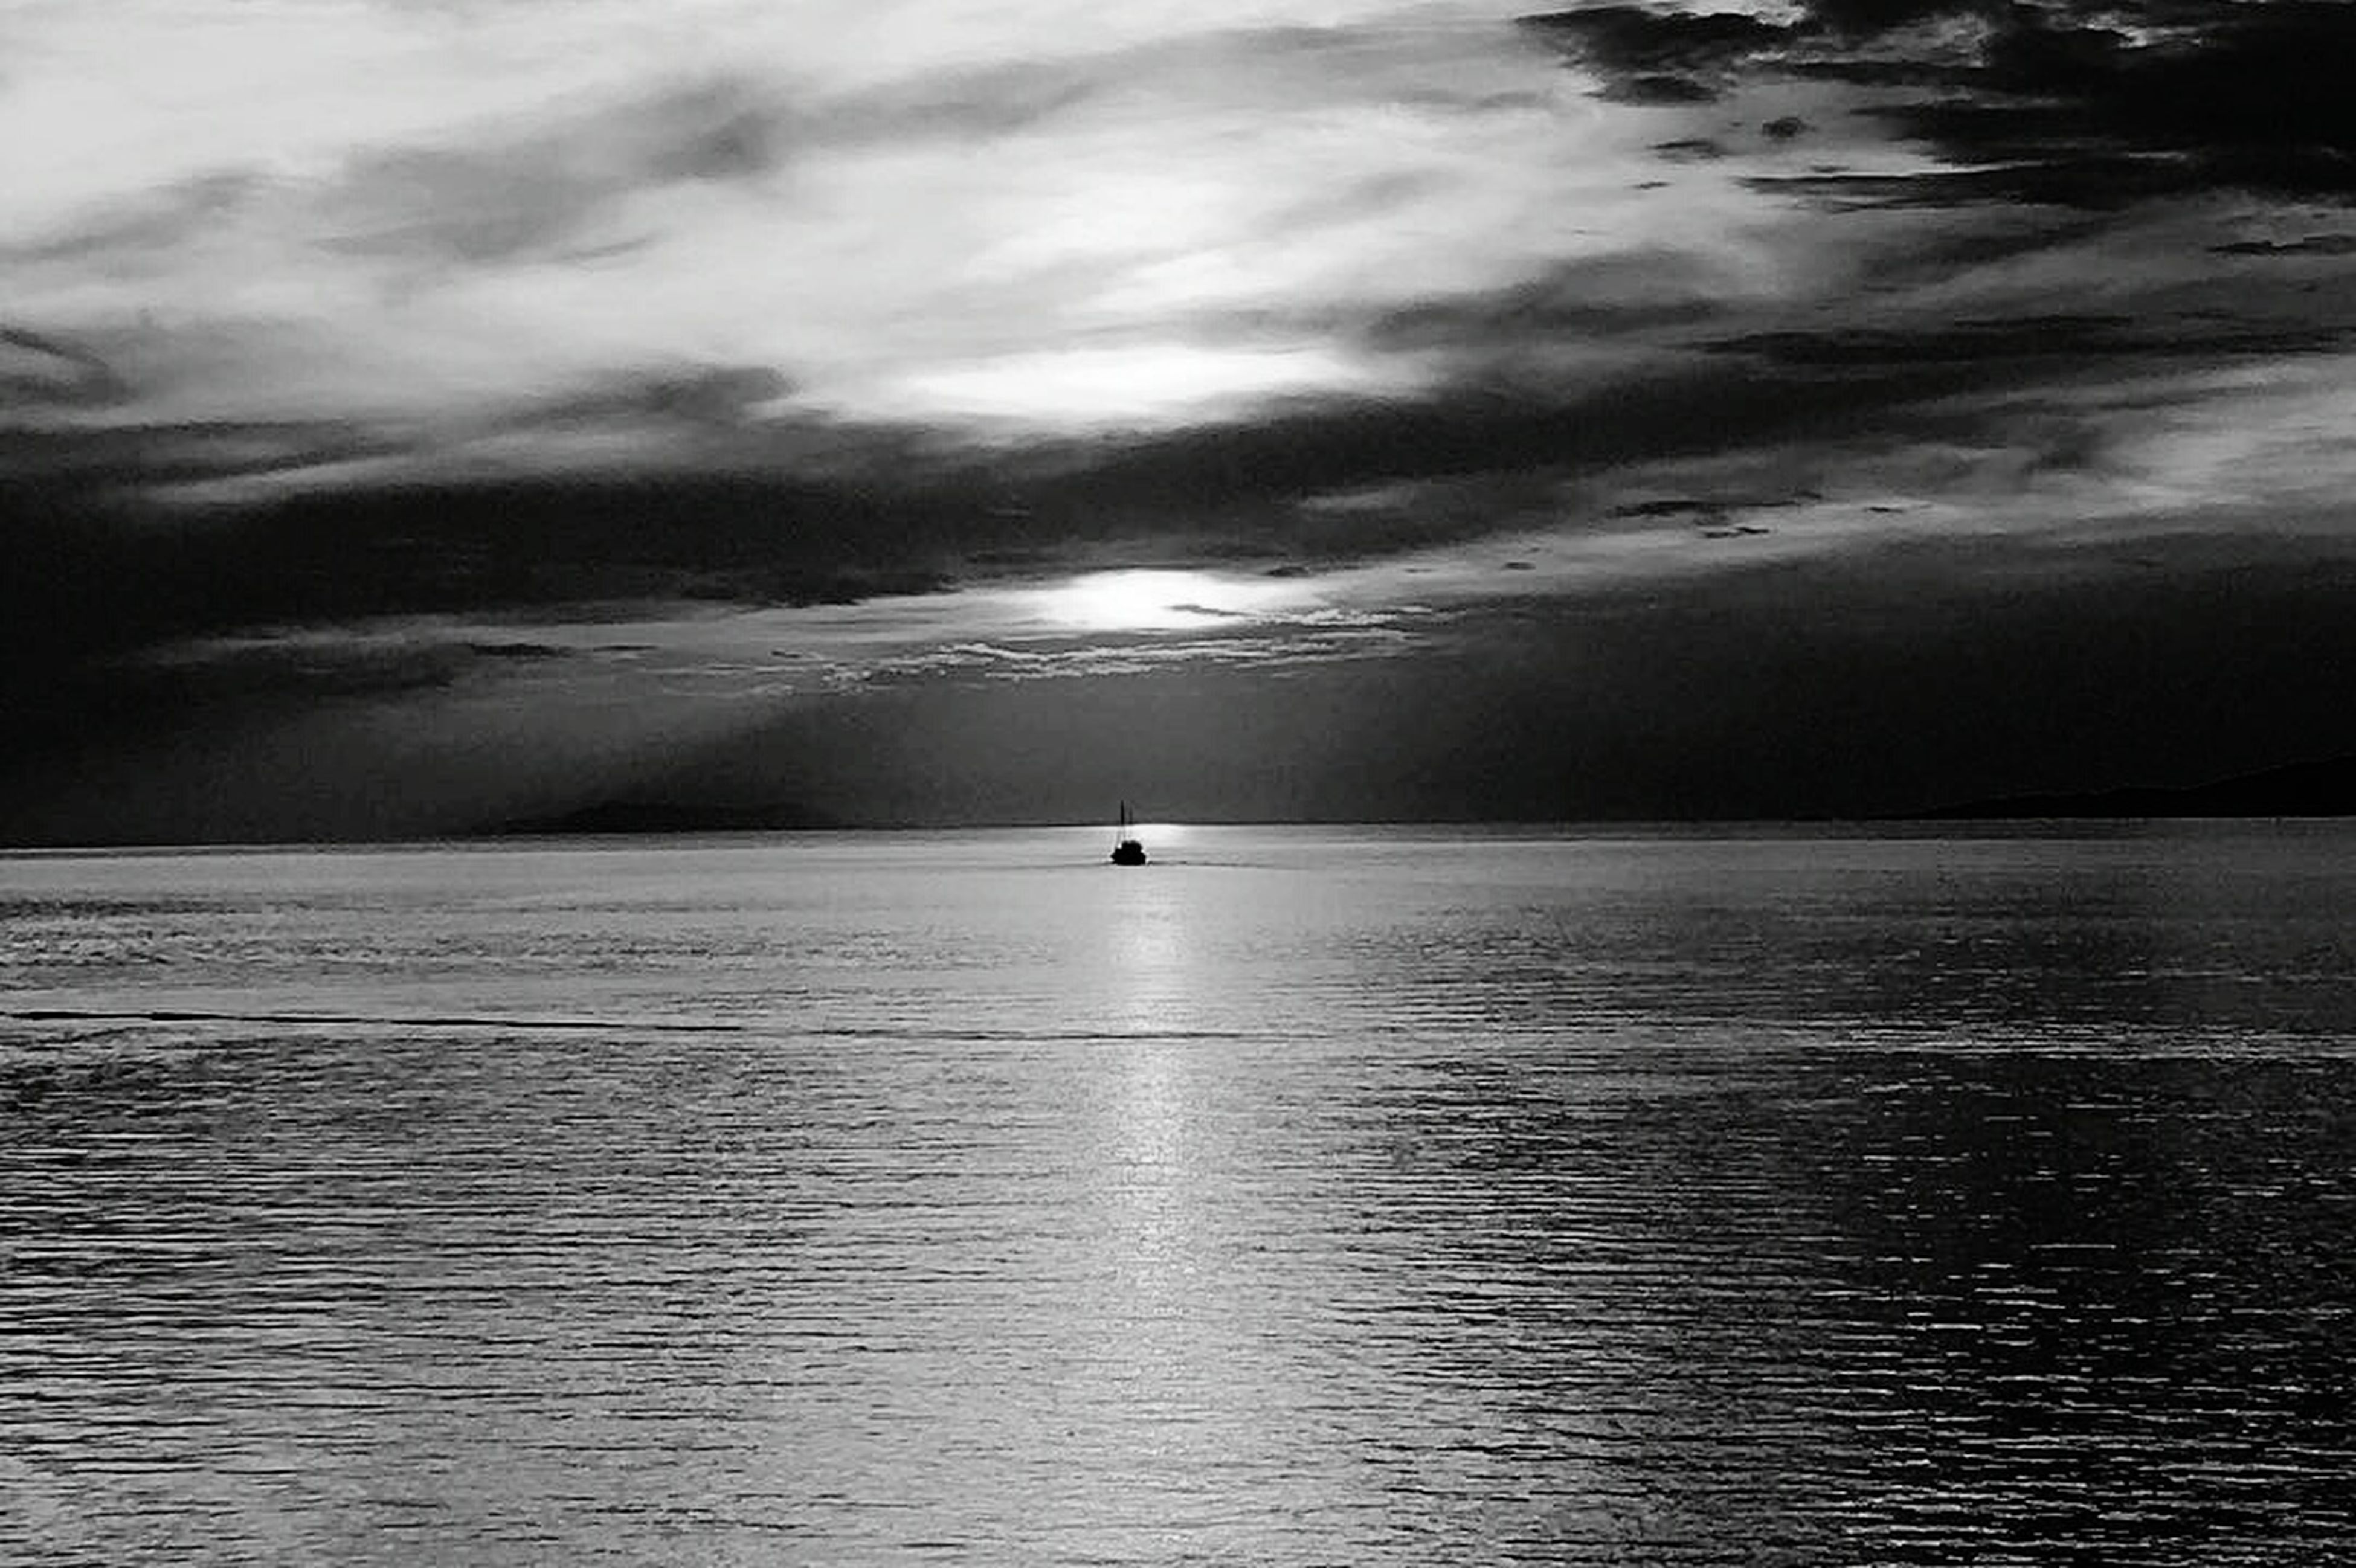 sea, beauty in nature, water, scenics, nature, cloud - sky, tranquility, tranquil scene, sky, awe, horizon over water, outdoors, no people, day